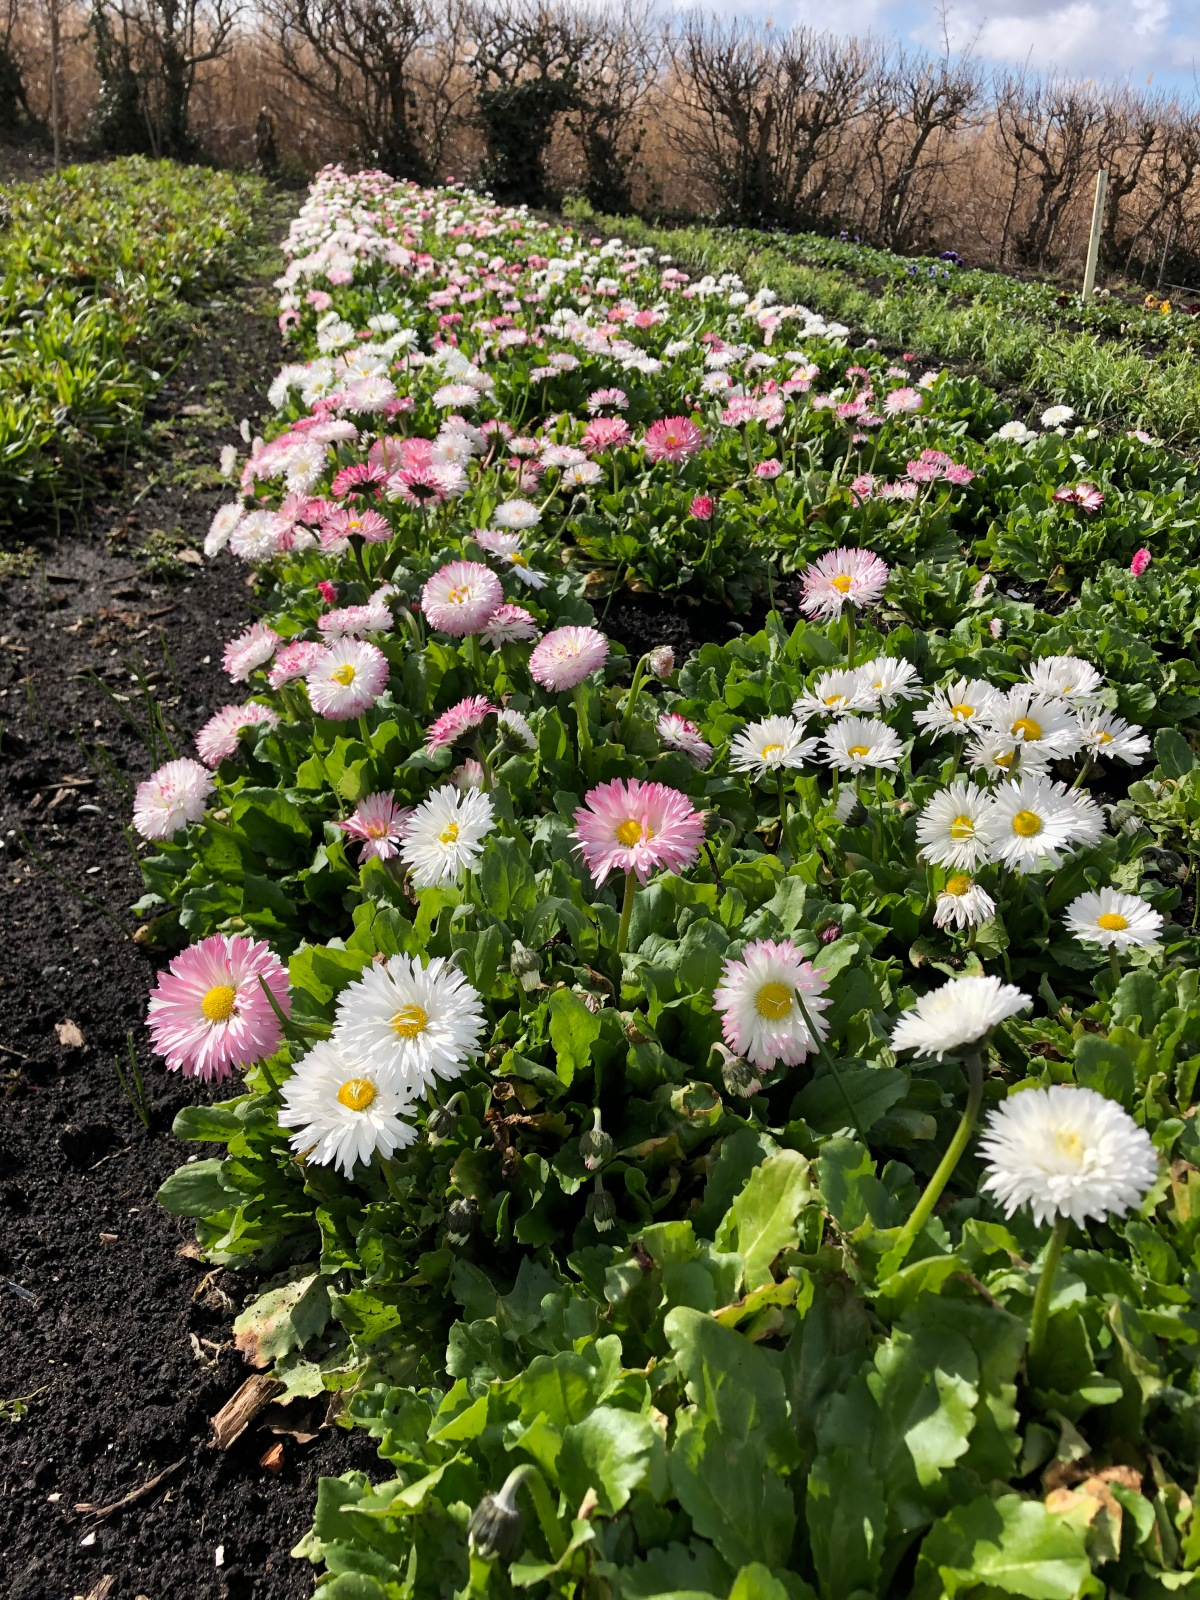 English Daisy - Bellis perennis 'Monstrusa'